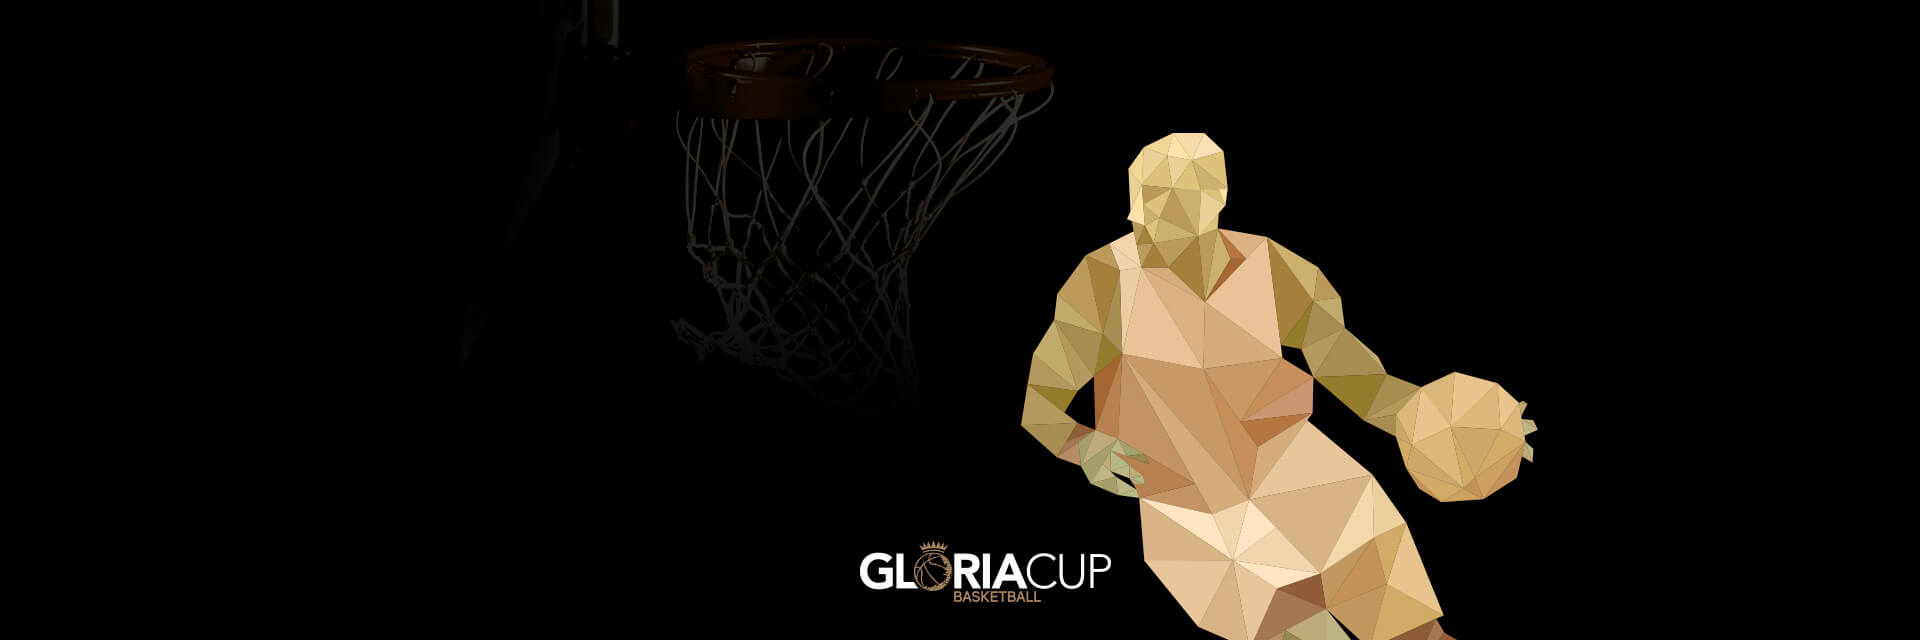 gloriasportsarena-basketball-gloriacup